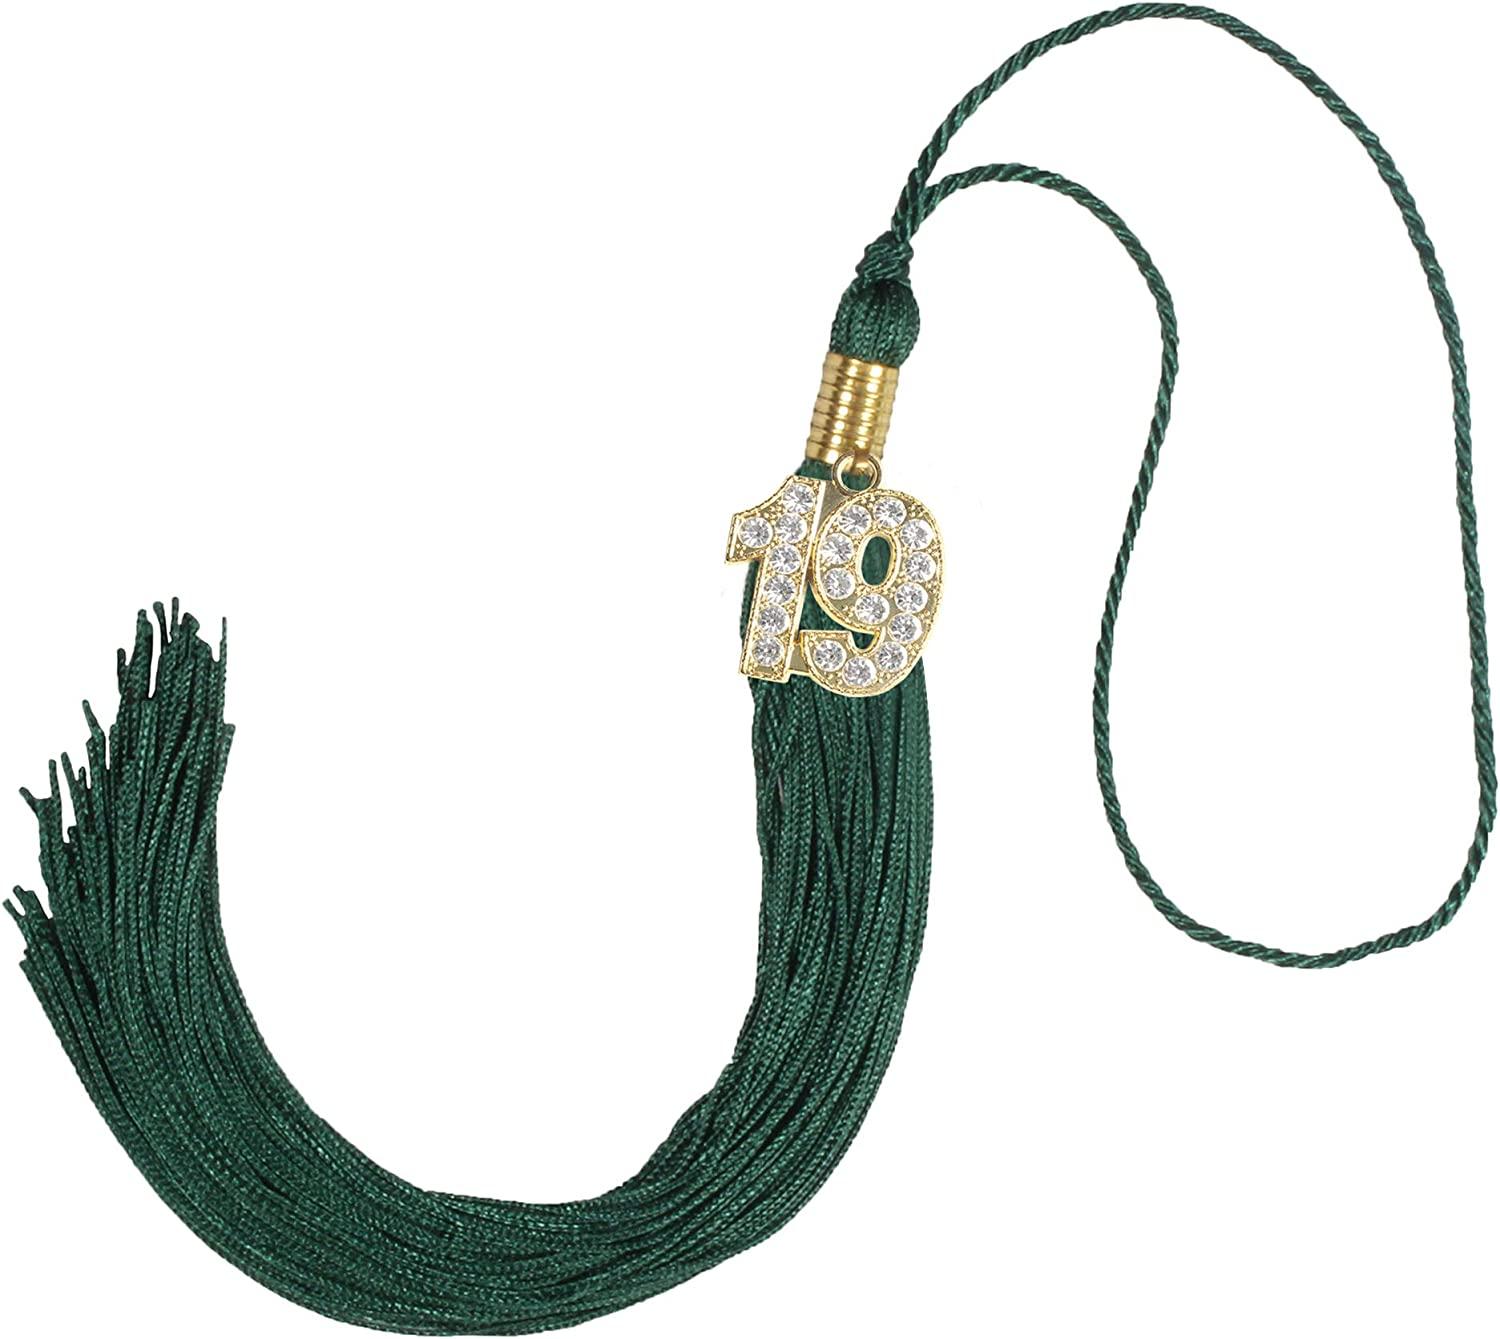 GraduationForYou Academic Graduation Tassel With 2019 Year Charm Available For 14 Colors